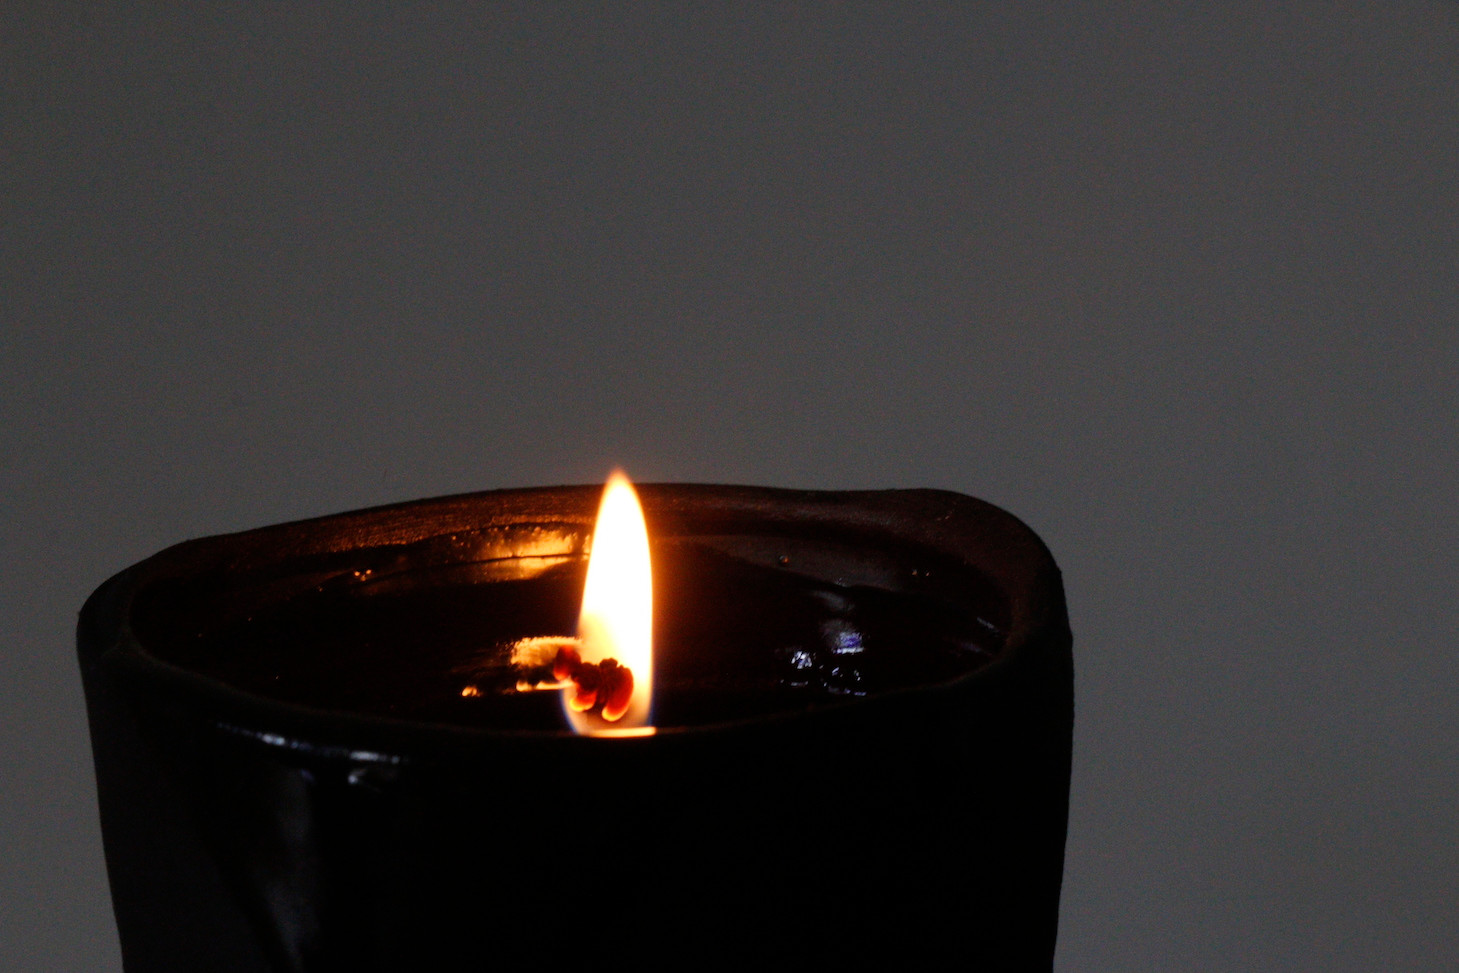 A Study of Honey Candle